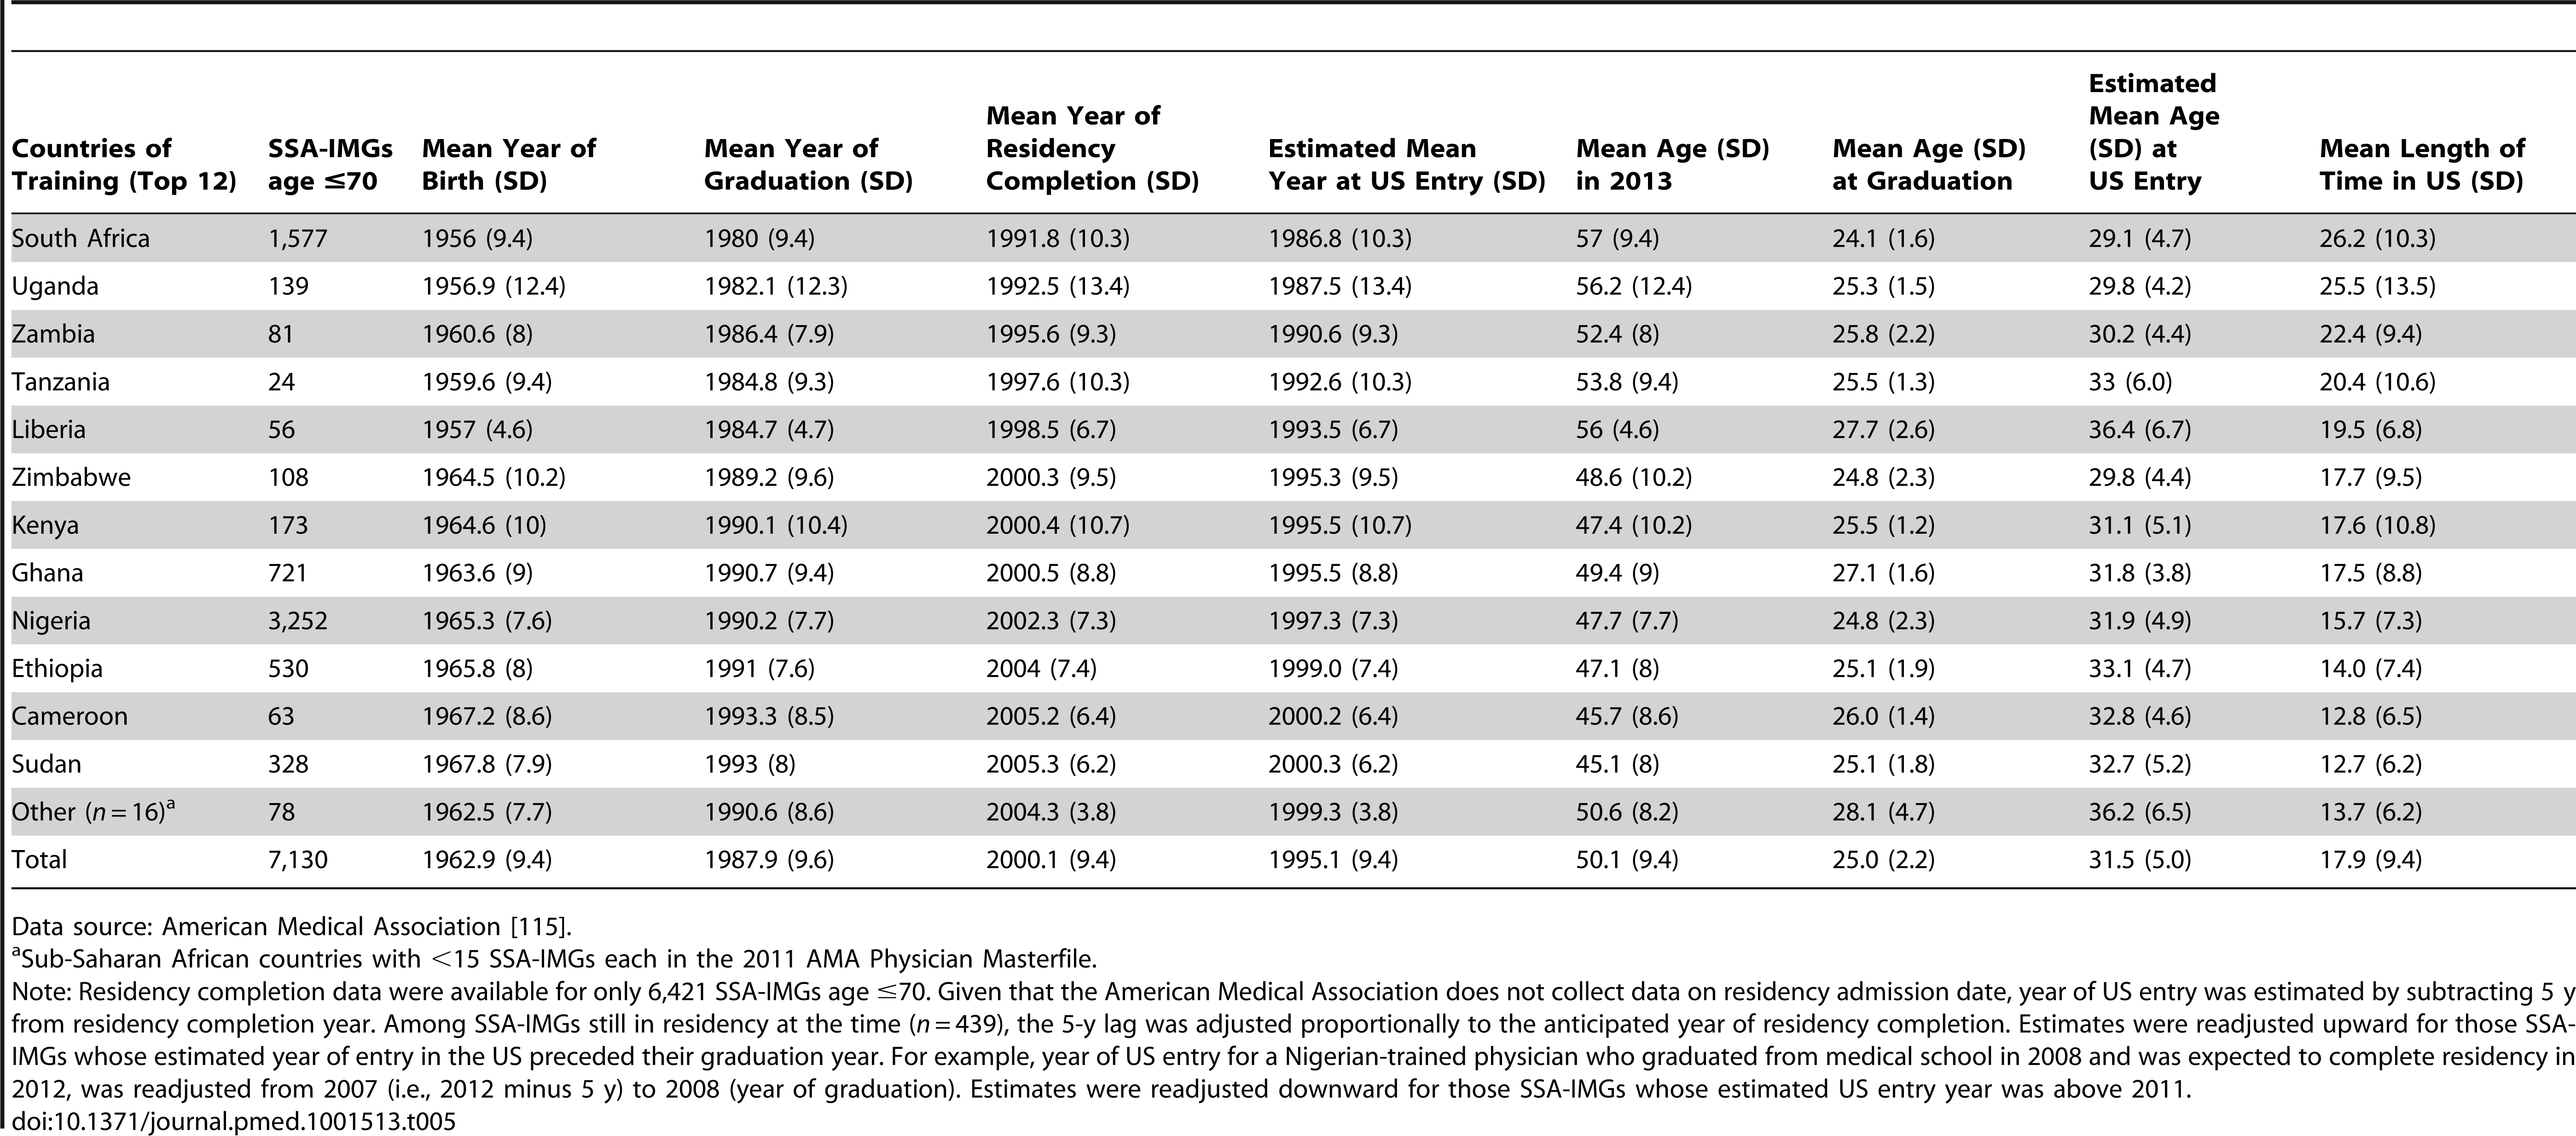 Birth, graduation, residency completion, and estimated US entry years among Sub-Saharan African-trained medical graduates (SSA-IMGs) appearing in the US physician workforce in 2011.